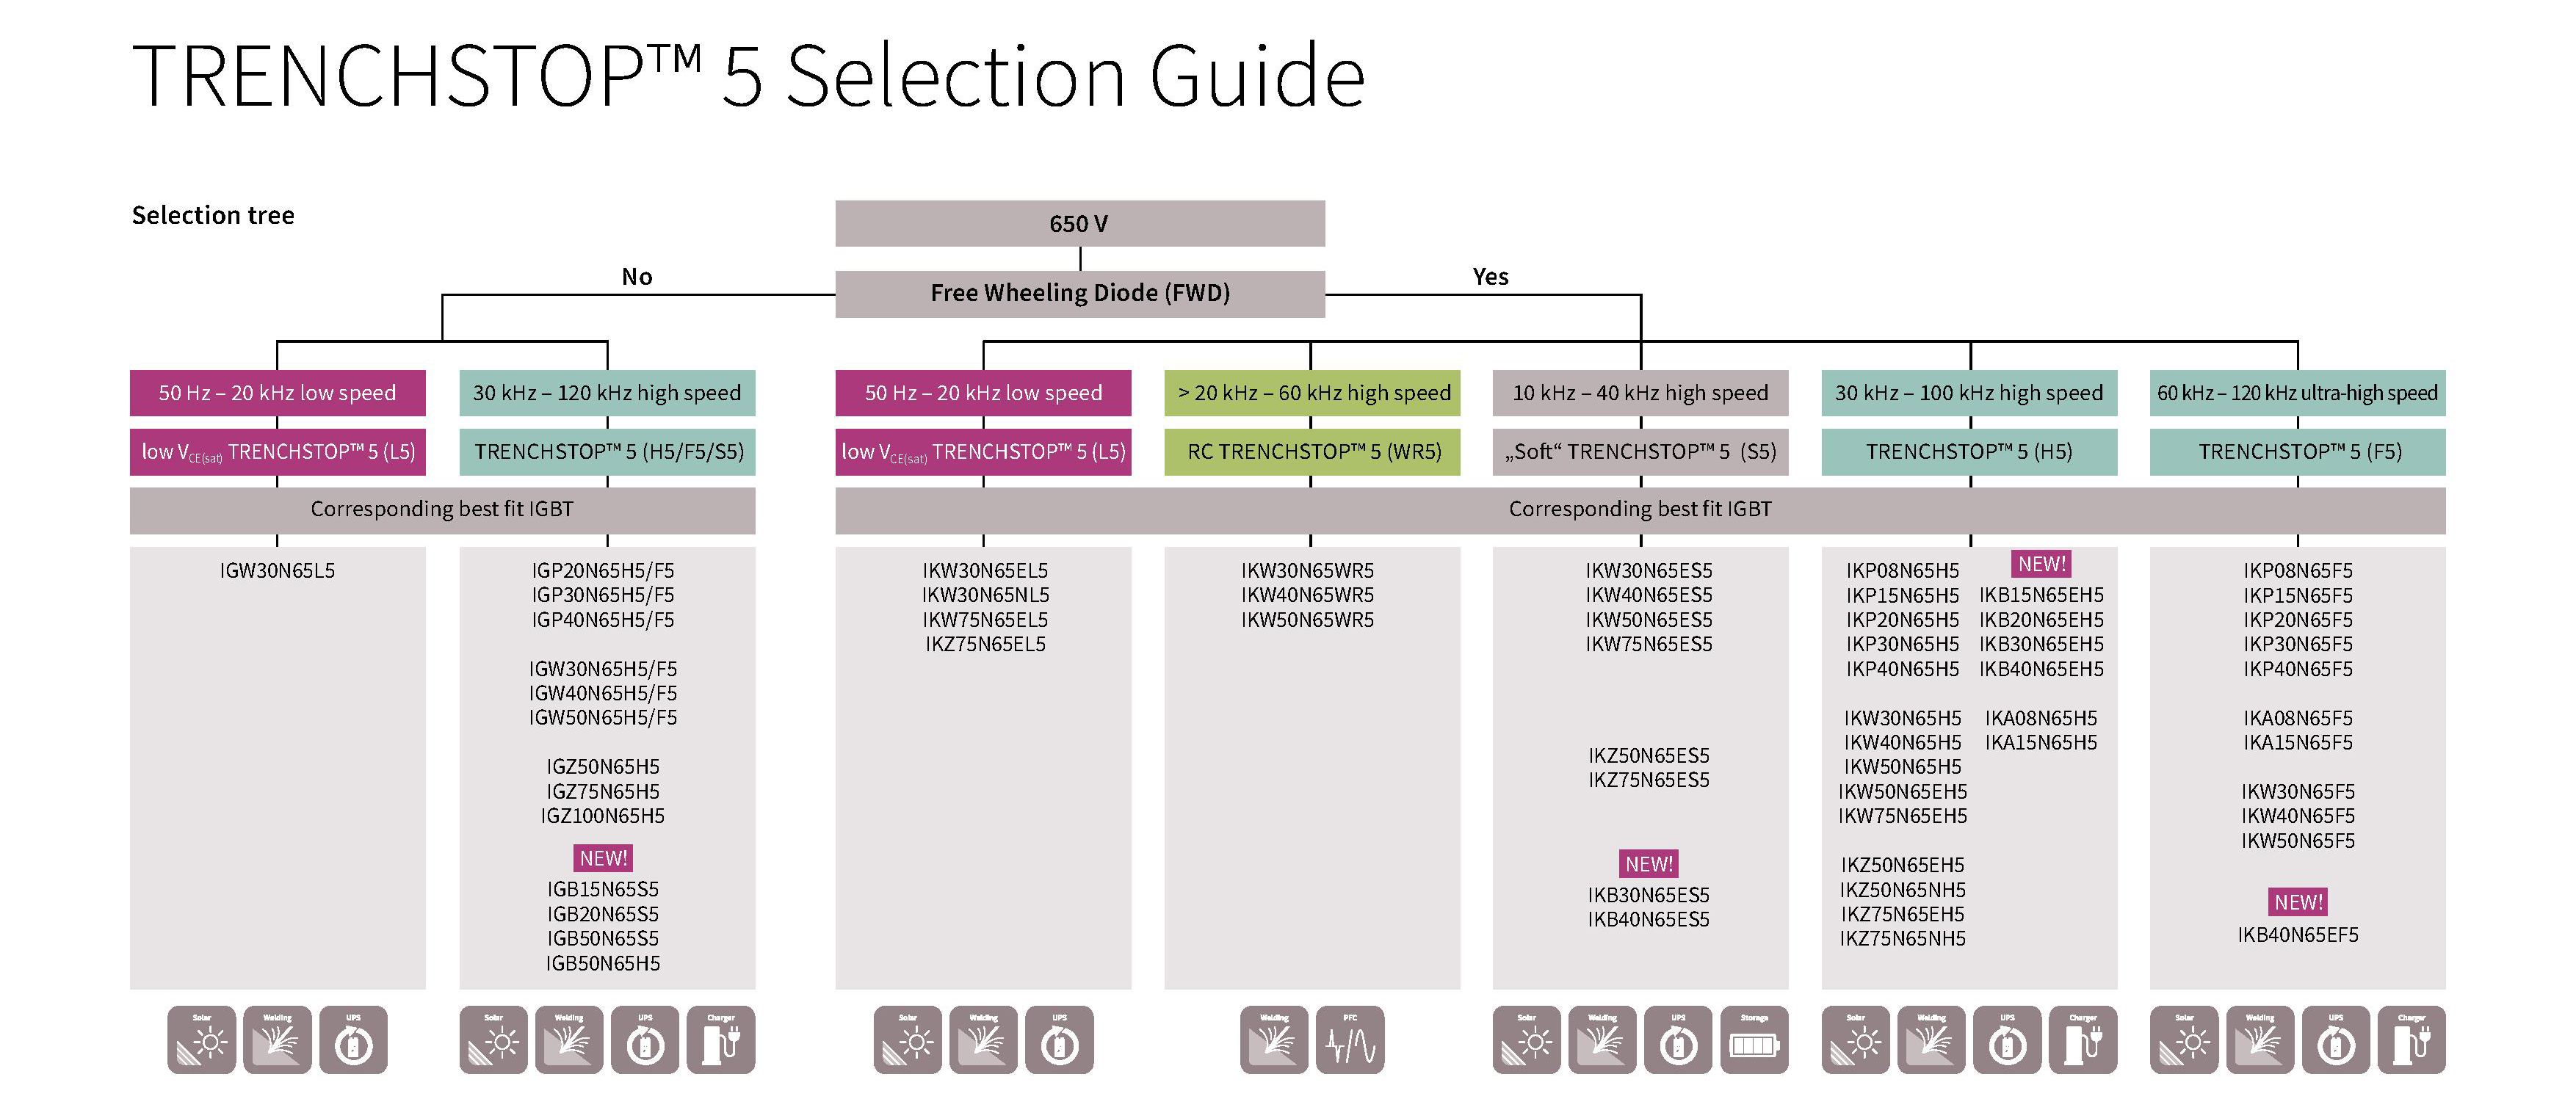 650 V TRENCHSTOP™ 5 Family Selection Tree - Selection guide